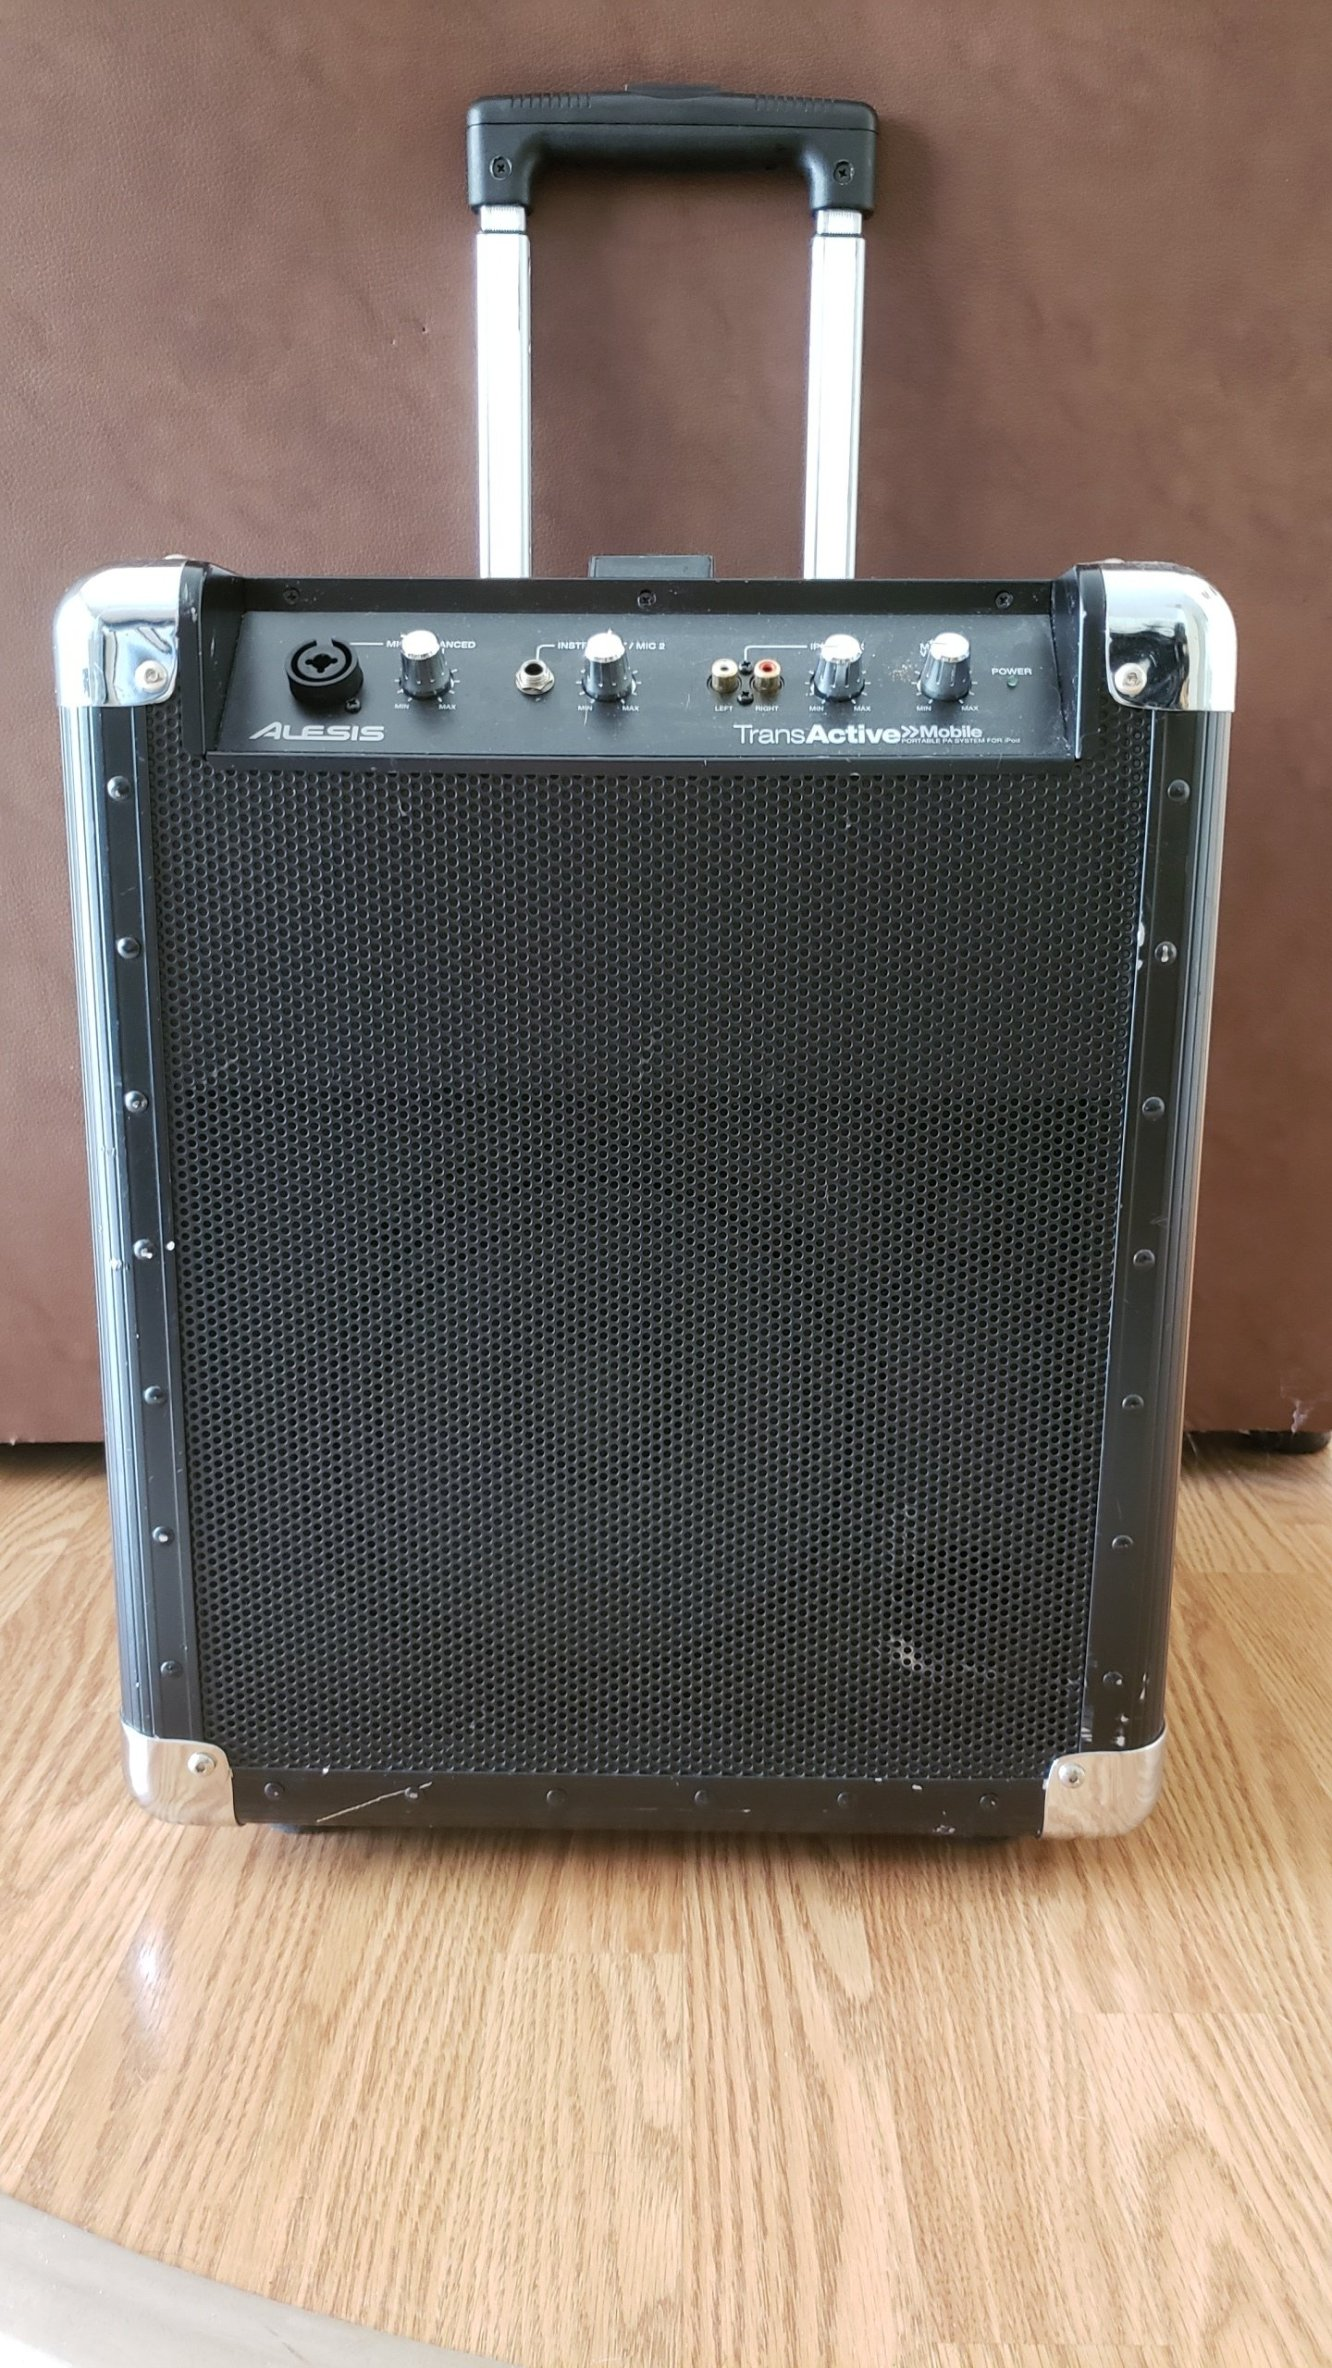 Alesis TransActive Mobile PA Speaker System with iPod Dock (used)